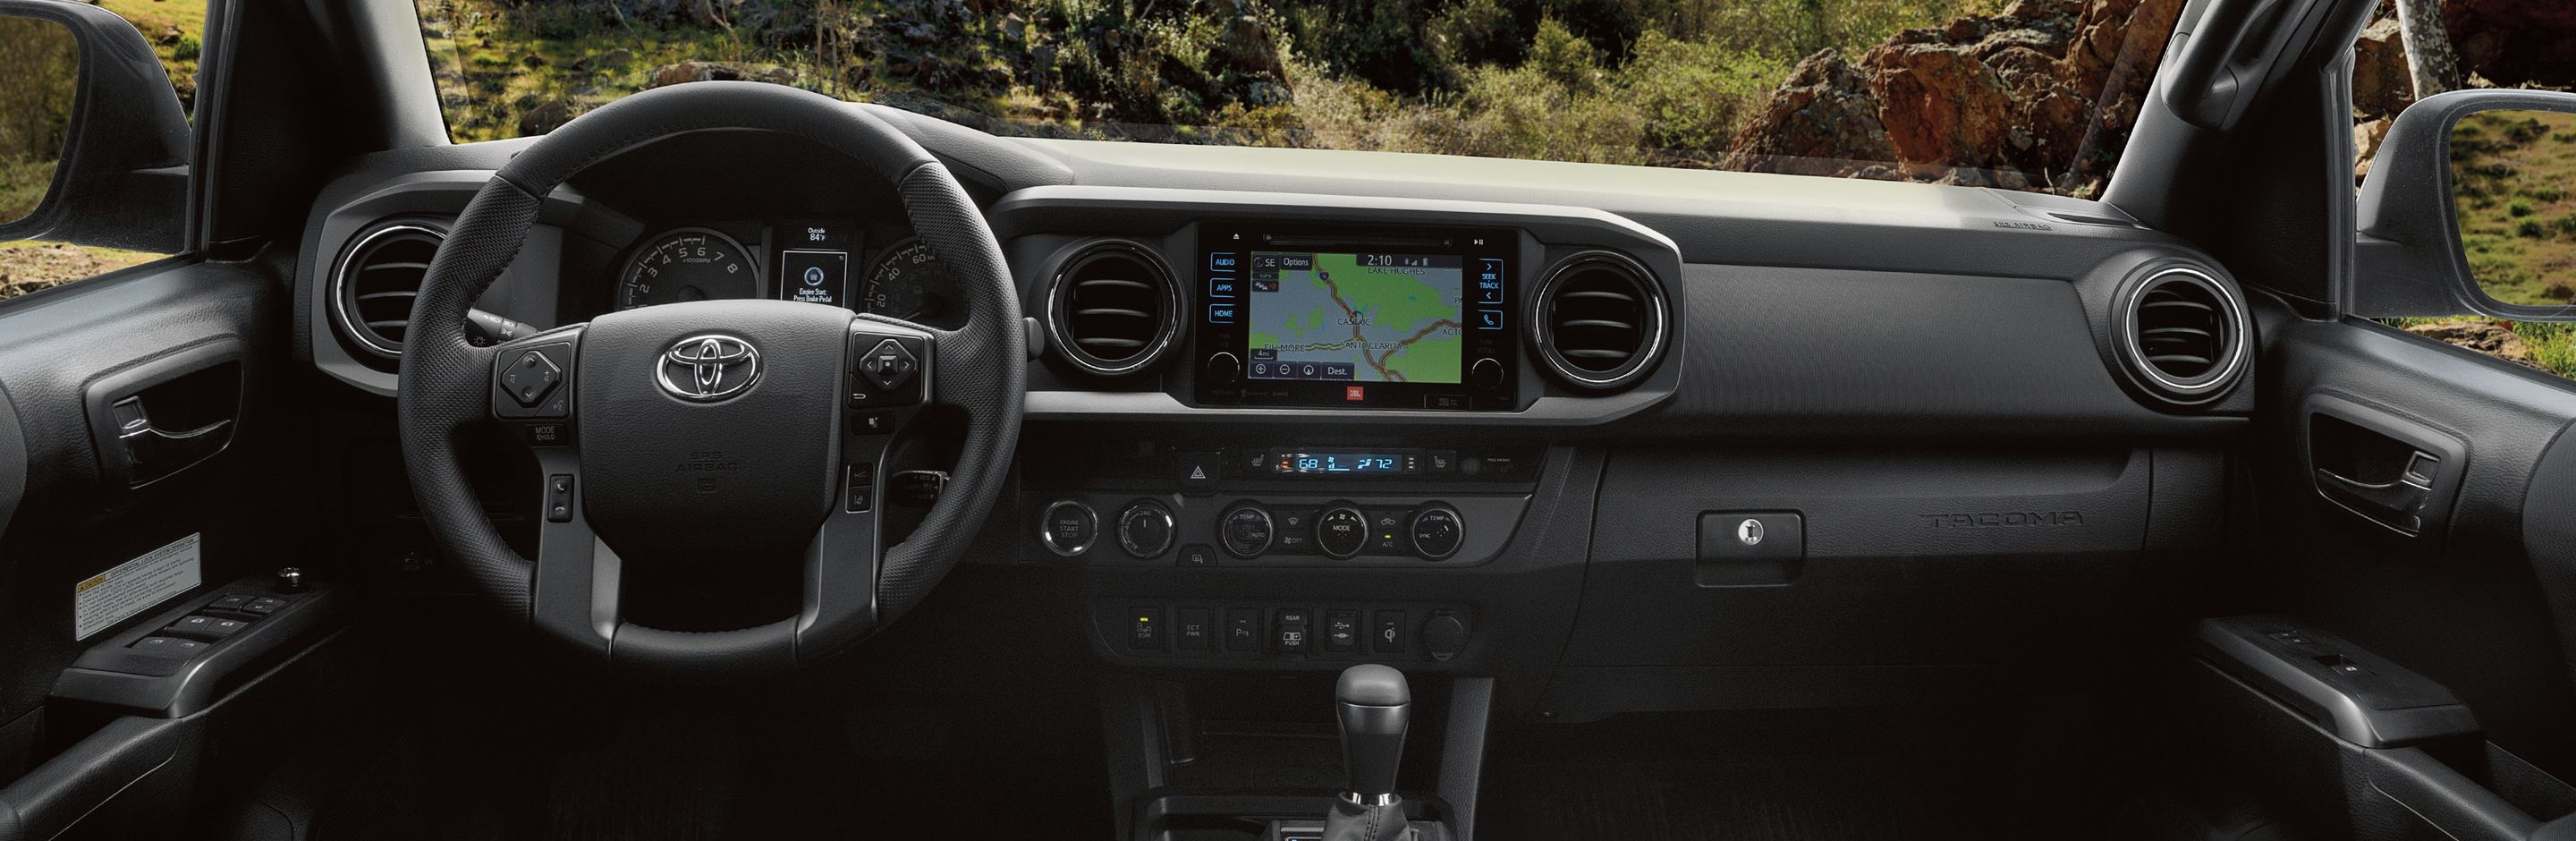 Interior of the 2019 Tacoma